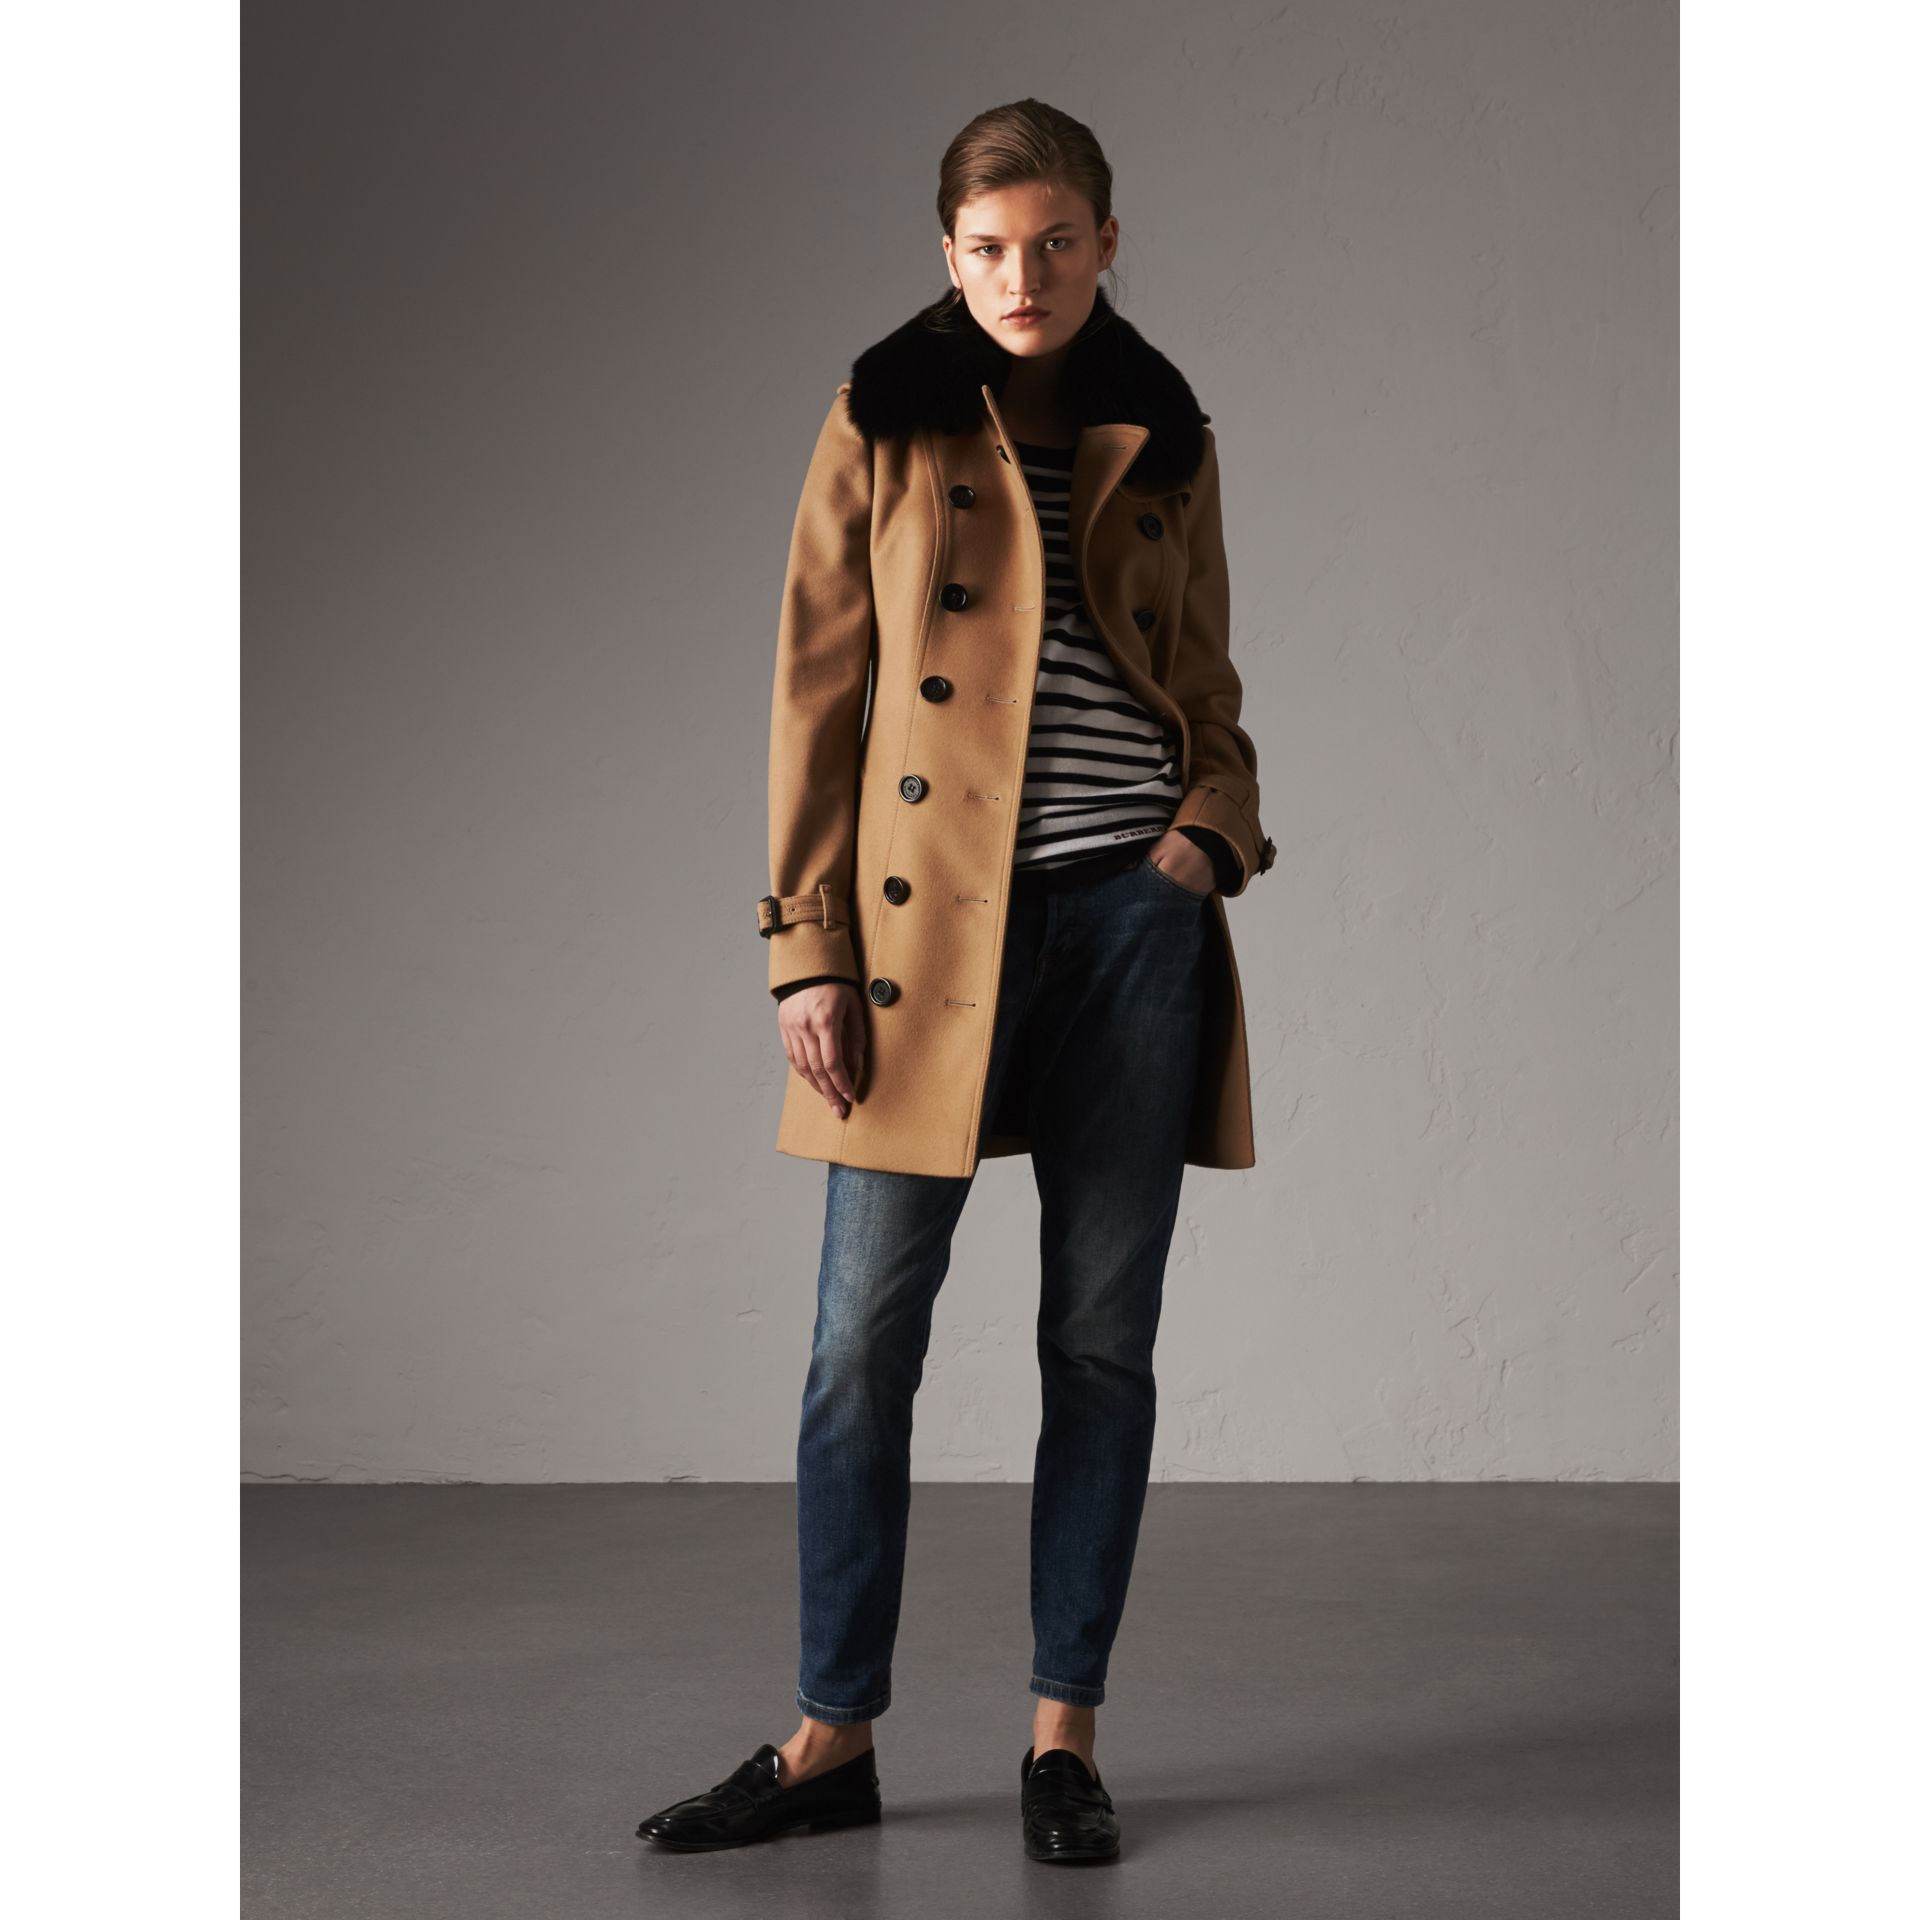 Wool Cashmere Trench Coat with Fur Collar in Camel - Women | Burberry United Kingdom - gallery image 5